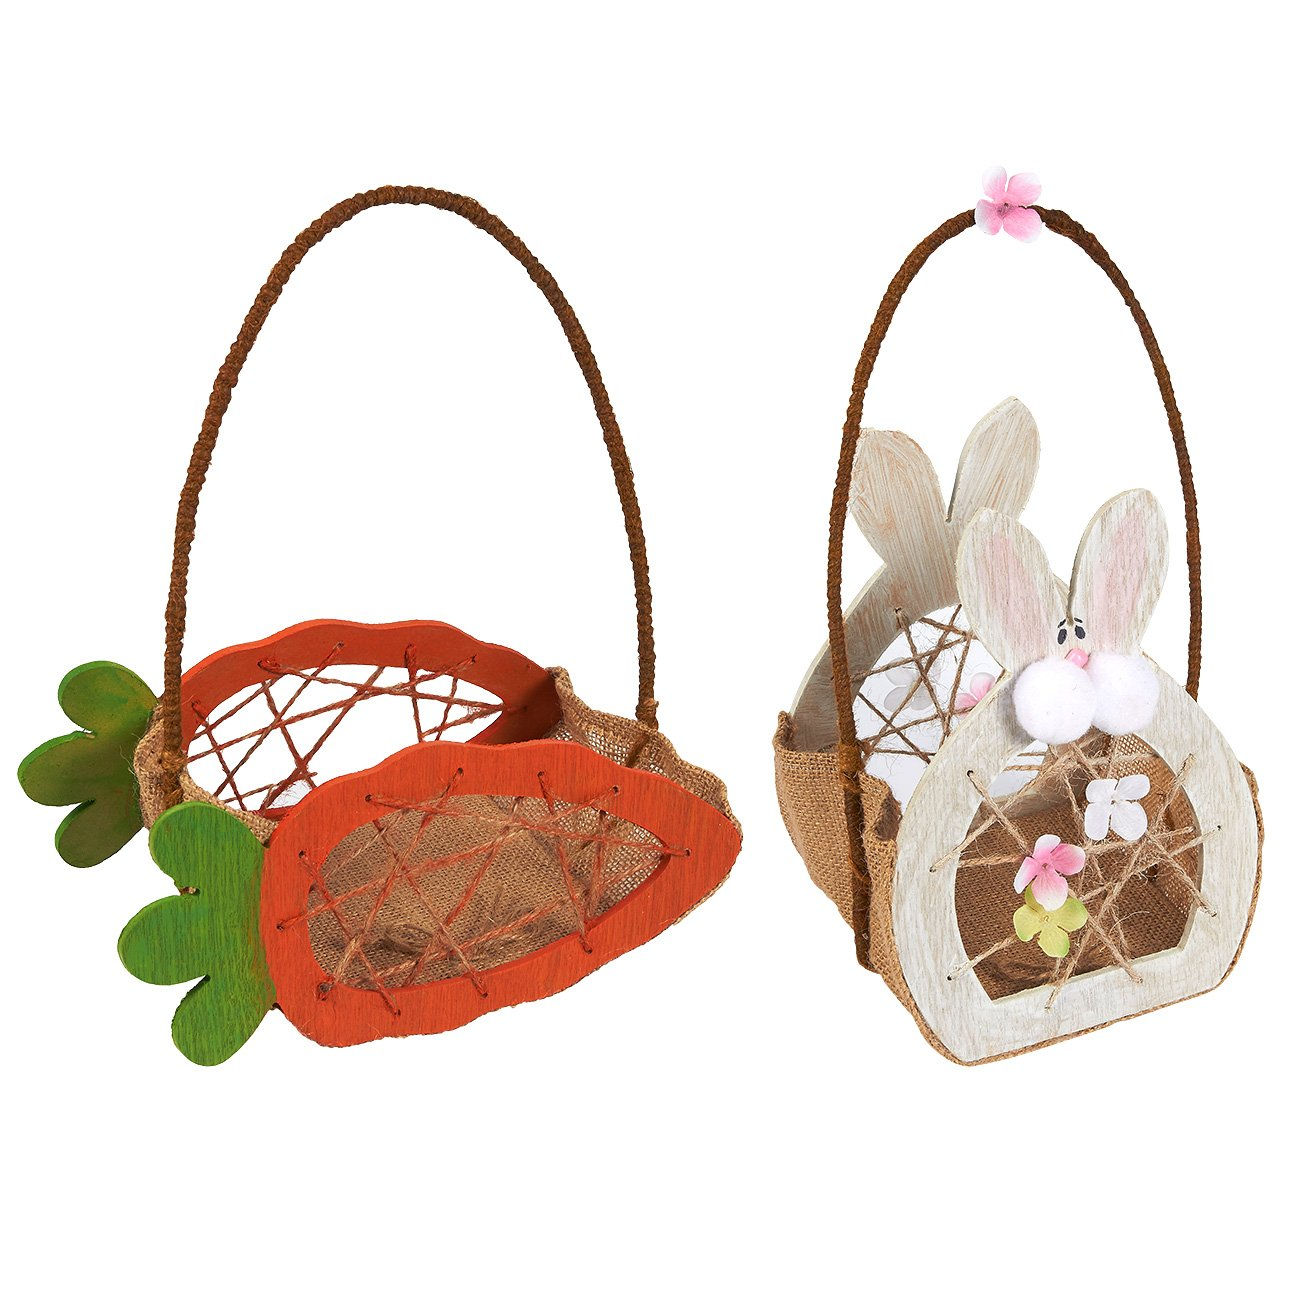 Amazon.com: Easter Egg Baskets - 2-Count Mini Gathering Baskets for ...